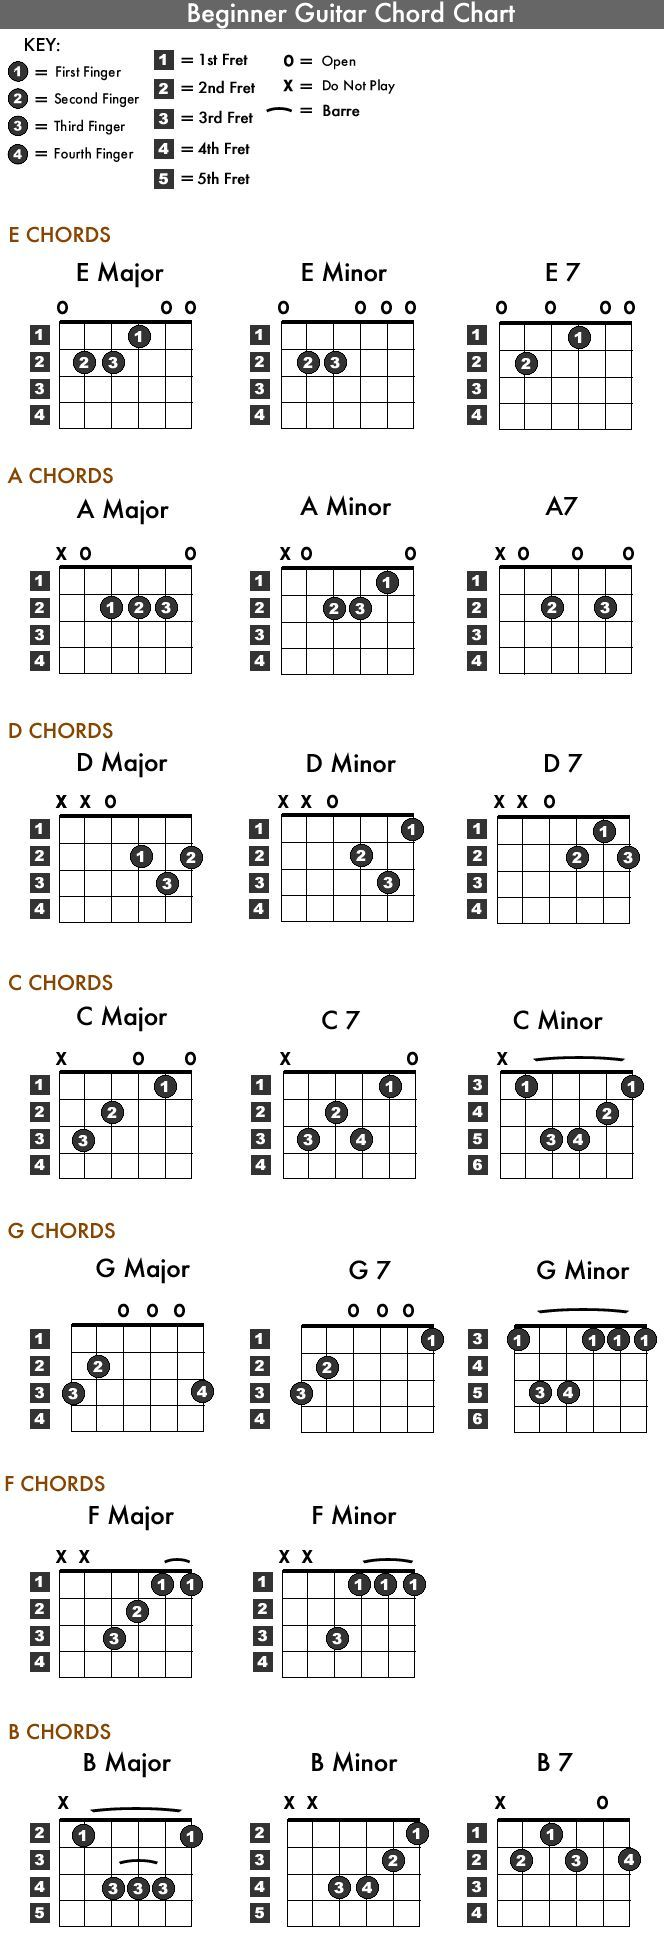 Hey Check This Site Out For Learning Guitar Amazing Stuff Guitar